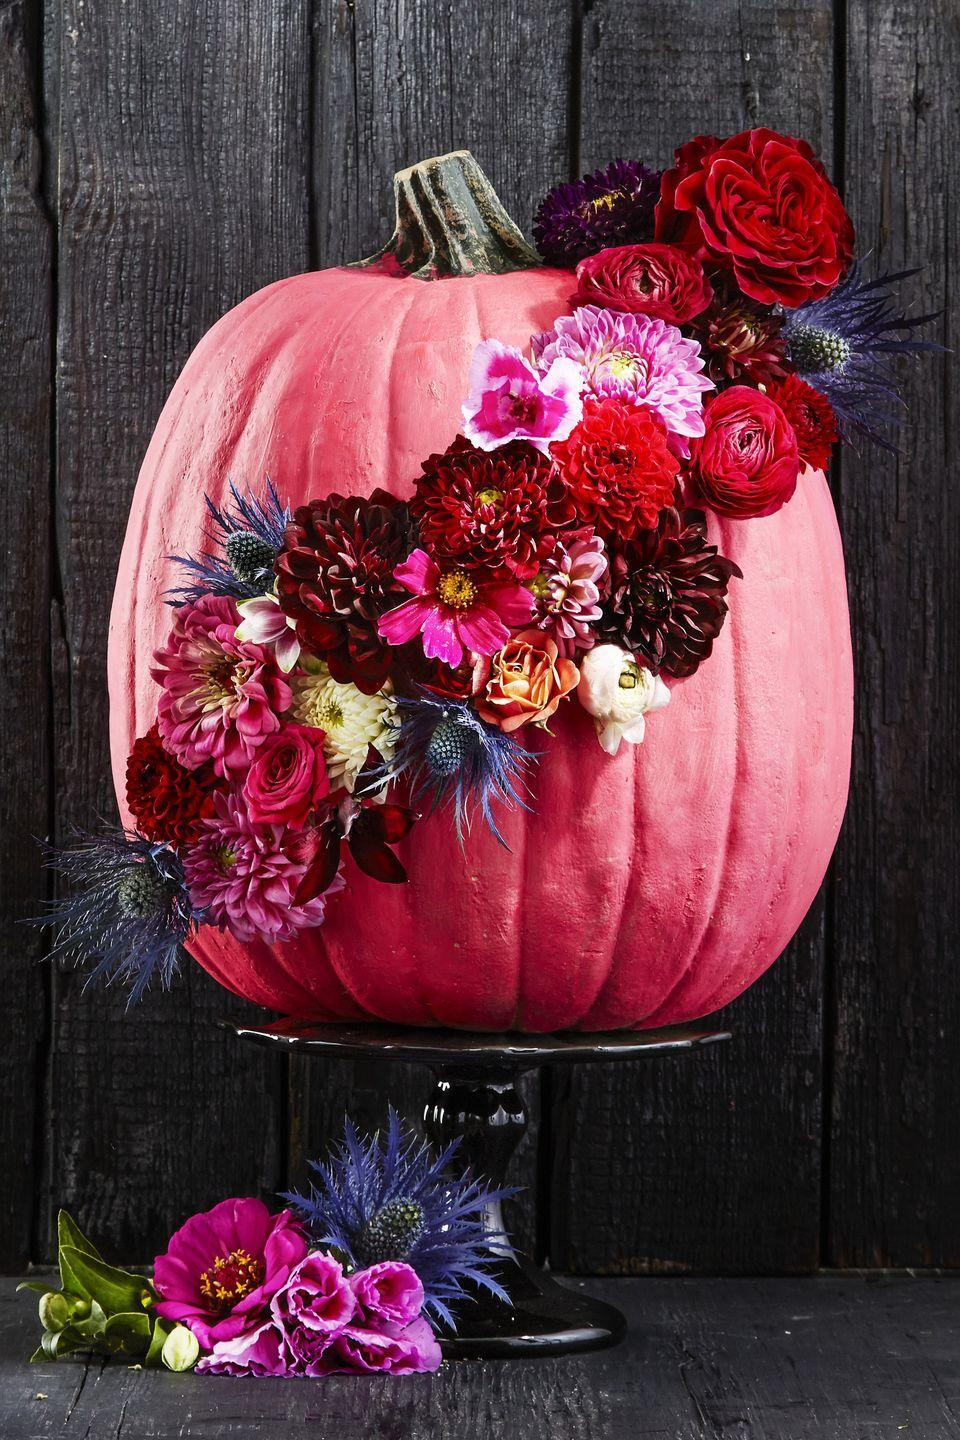 <p>After spray painting your gourd the prettiest pink, create a sash with fresh or faux blooms. Snip stems about one to two inches from buds, drill small holes in the painted rind, then stick stems in holes. If you opt for real flowers, extend their life by periodically spritzing them with water.</p>